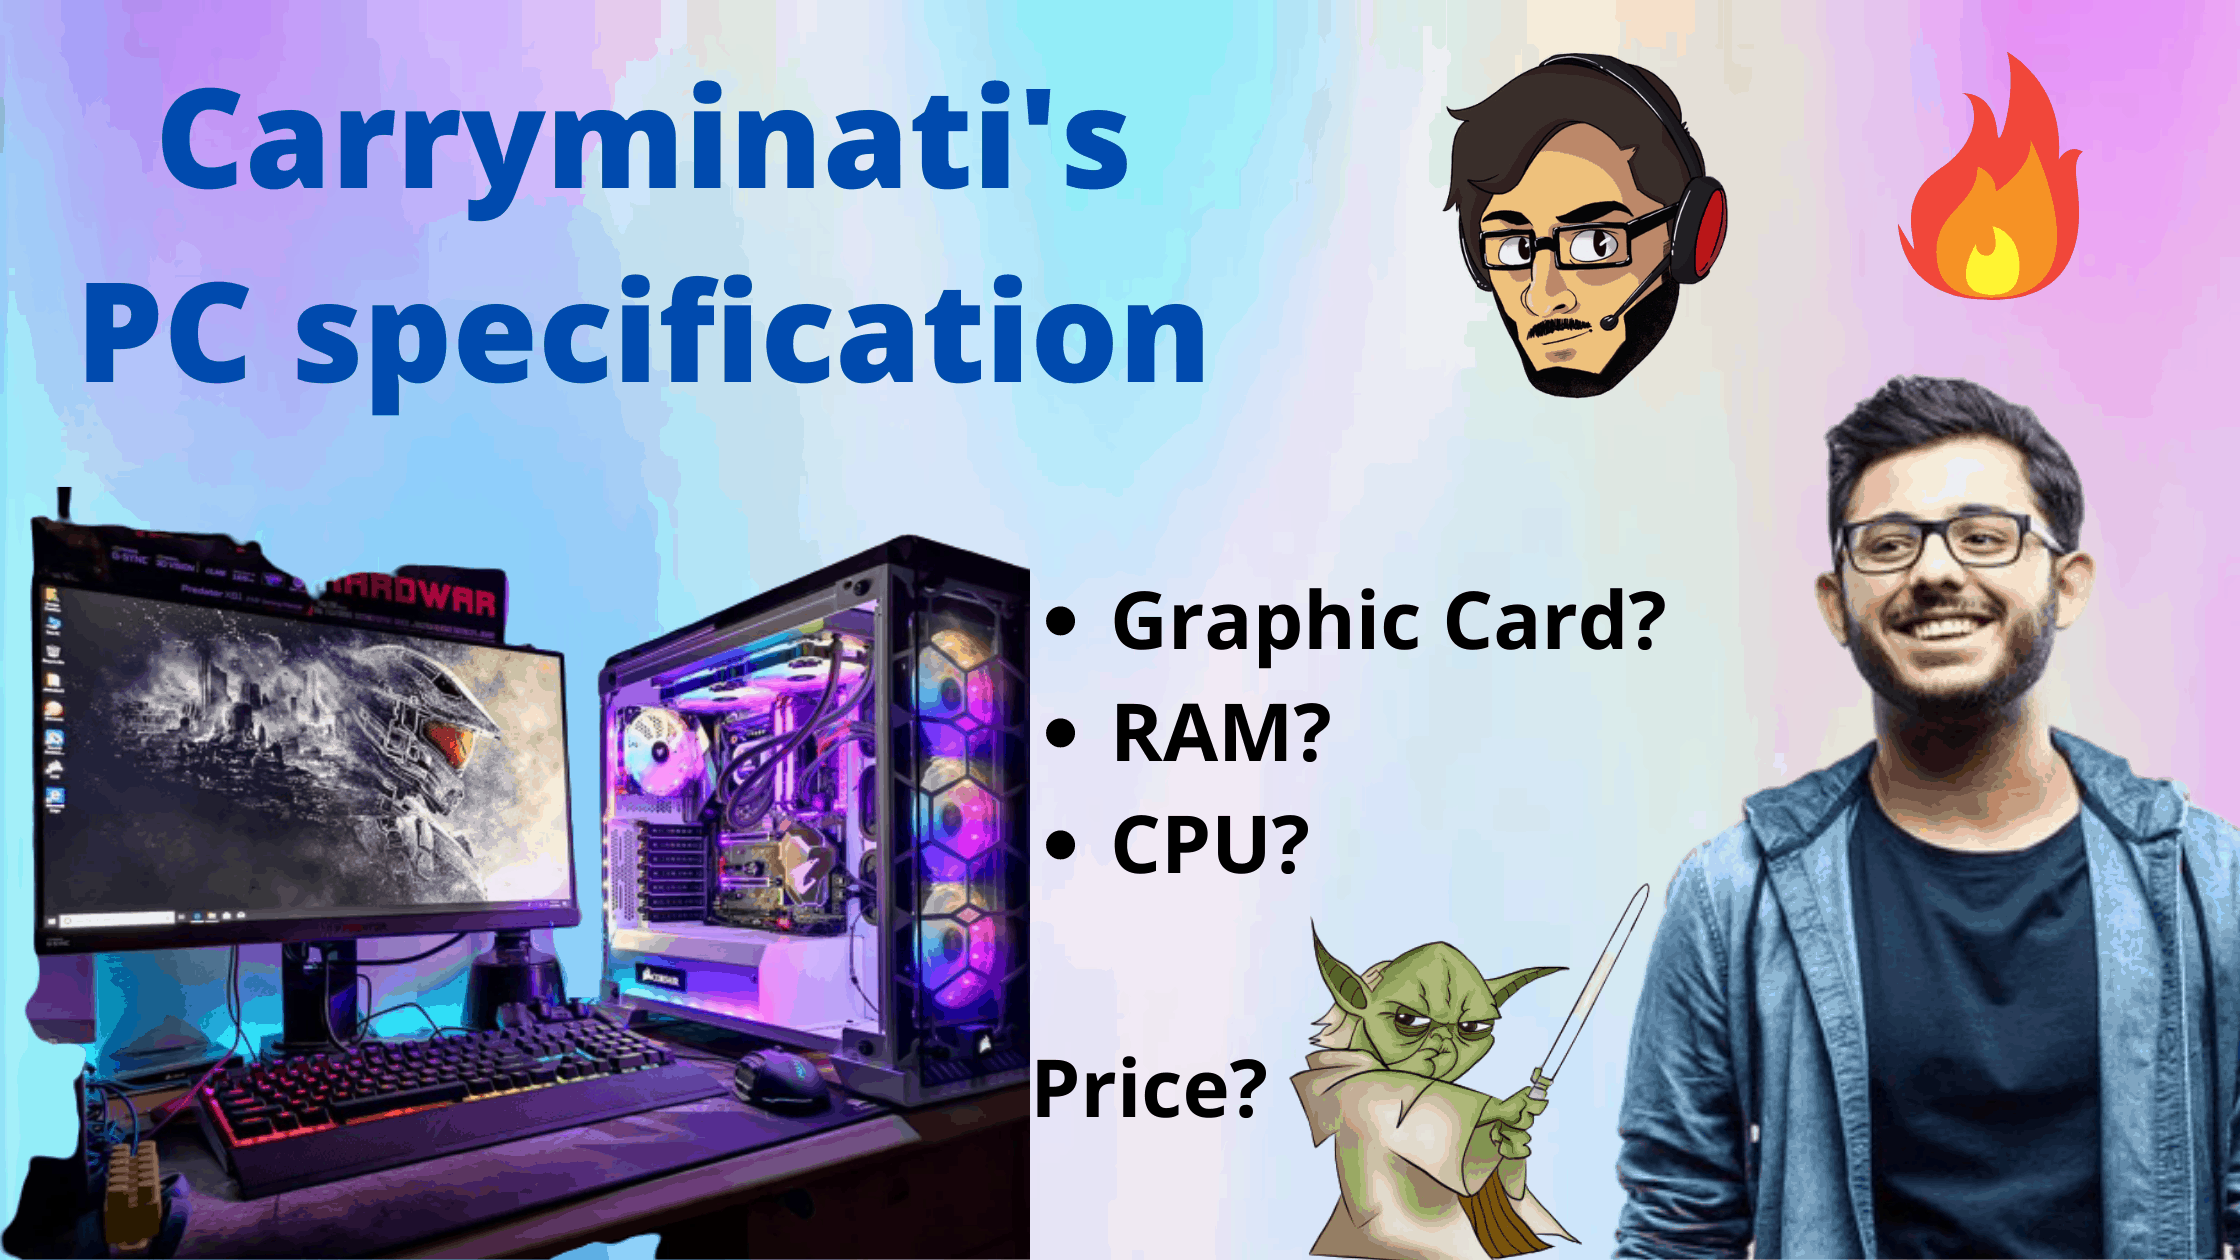 Carryminati(Ajey Nagar) pc specifications- What is cost of carry's PC?